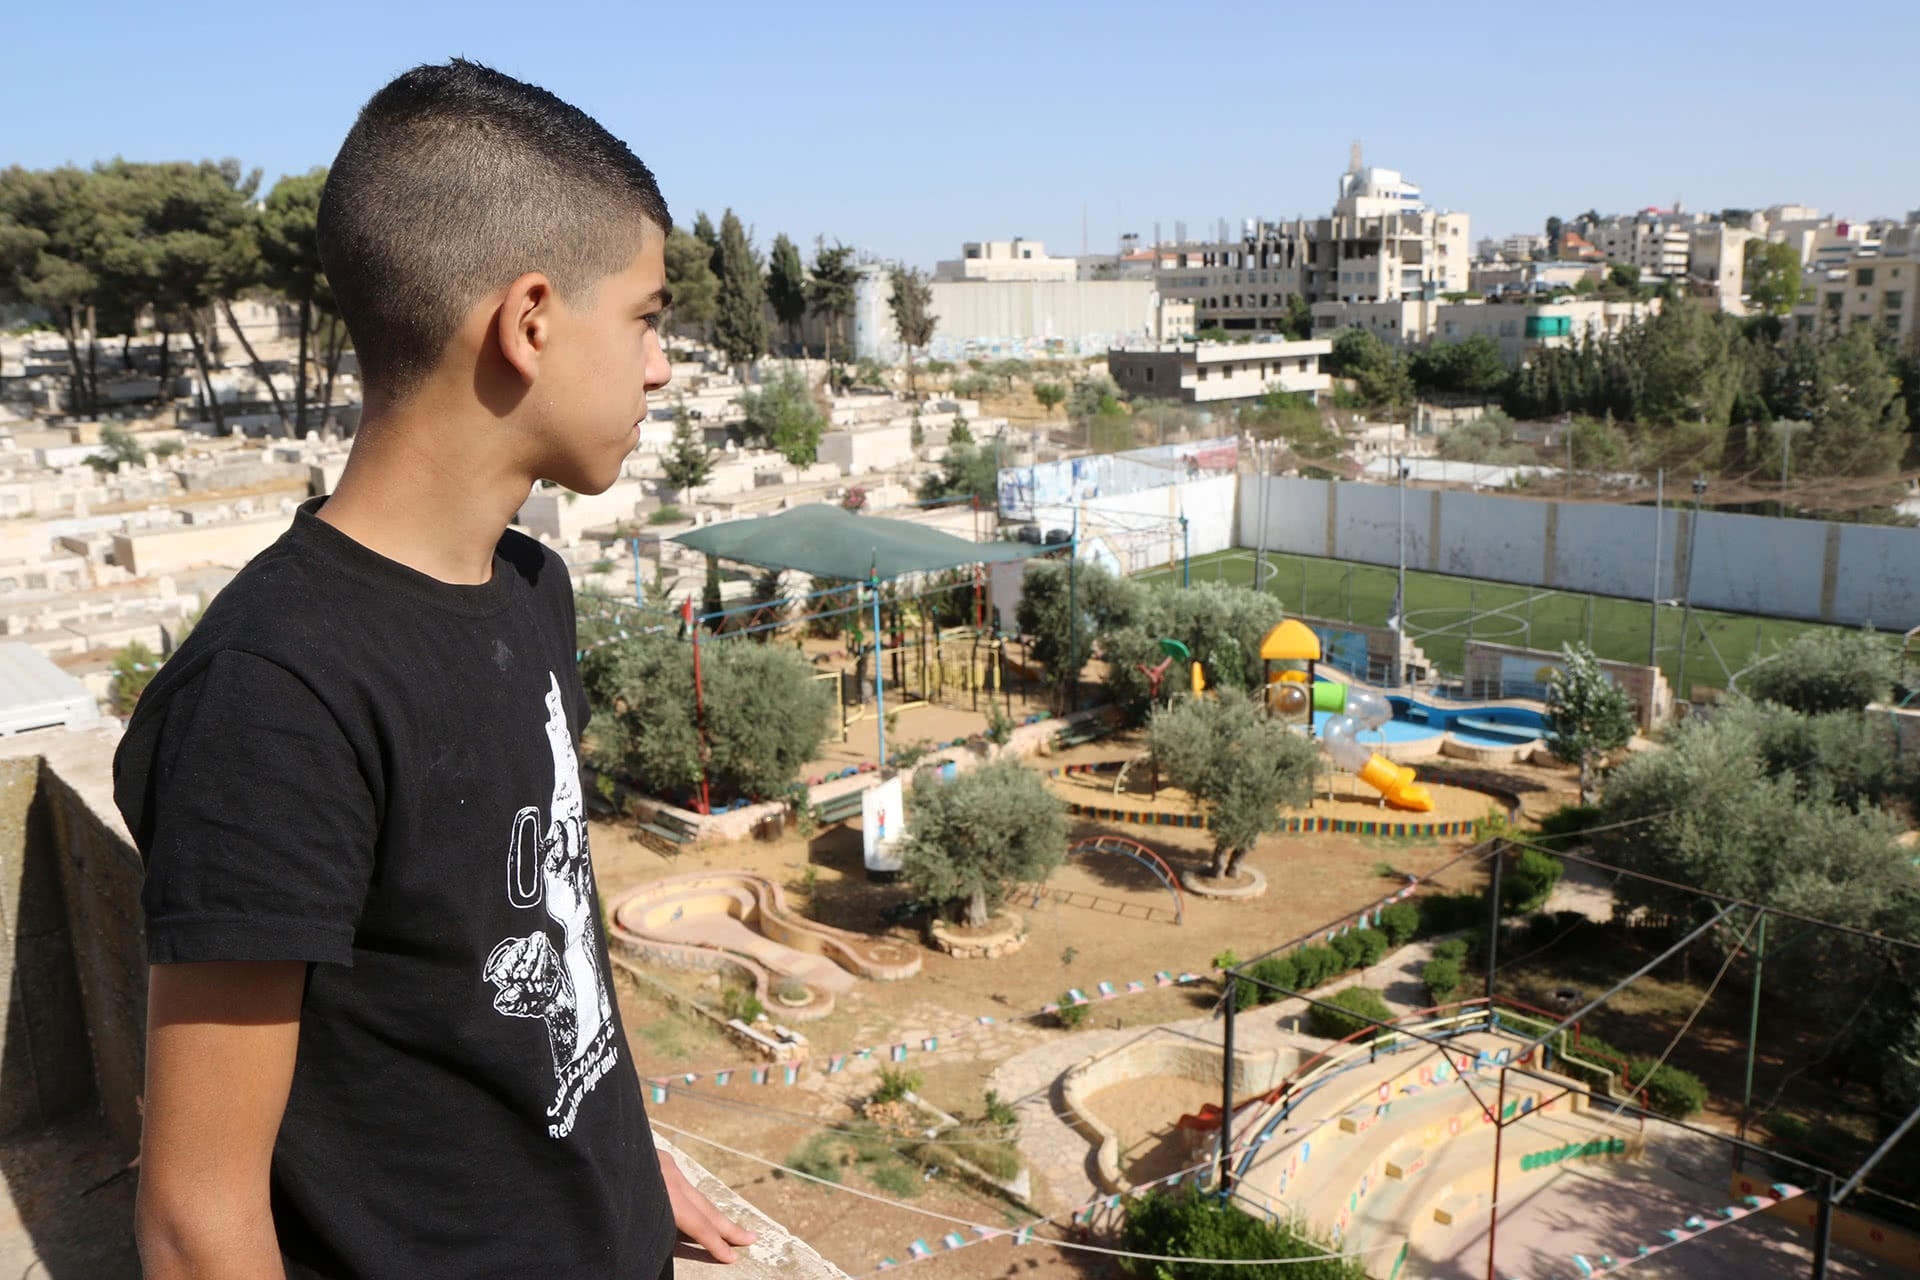 Leith Hammad, 14, looks at the recreational area and military base next to Lajee center. (Photo: DCIP/ Ahmad Al-Bazz)